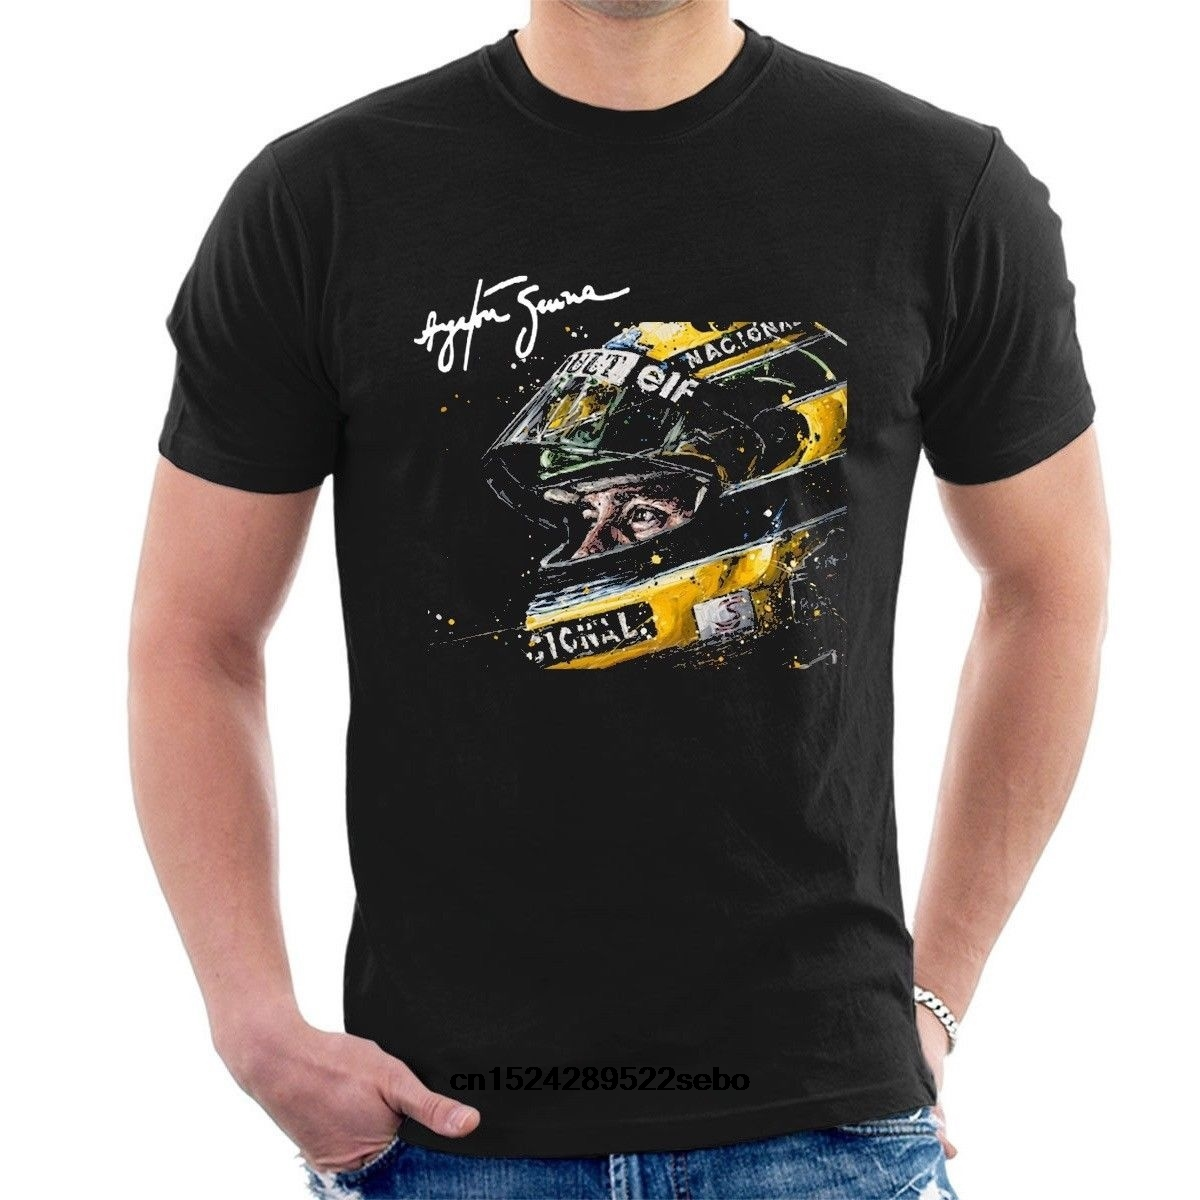 cotton-tee-ayrton-font-b-senna-b-font-tribute-helmet-men's-lightweight-fitted-short-sleeve-t-shirt